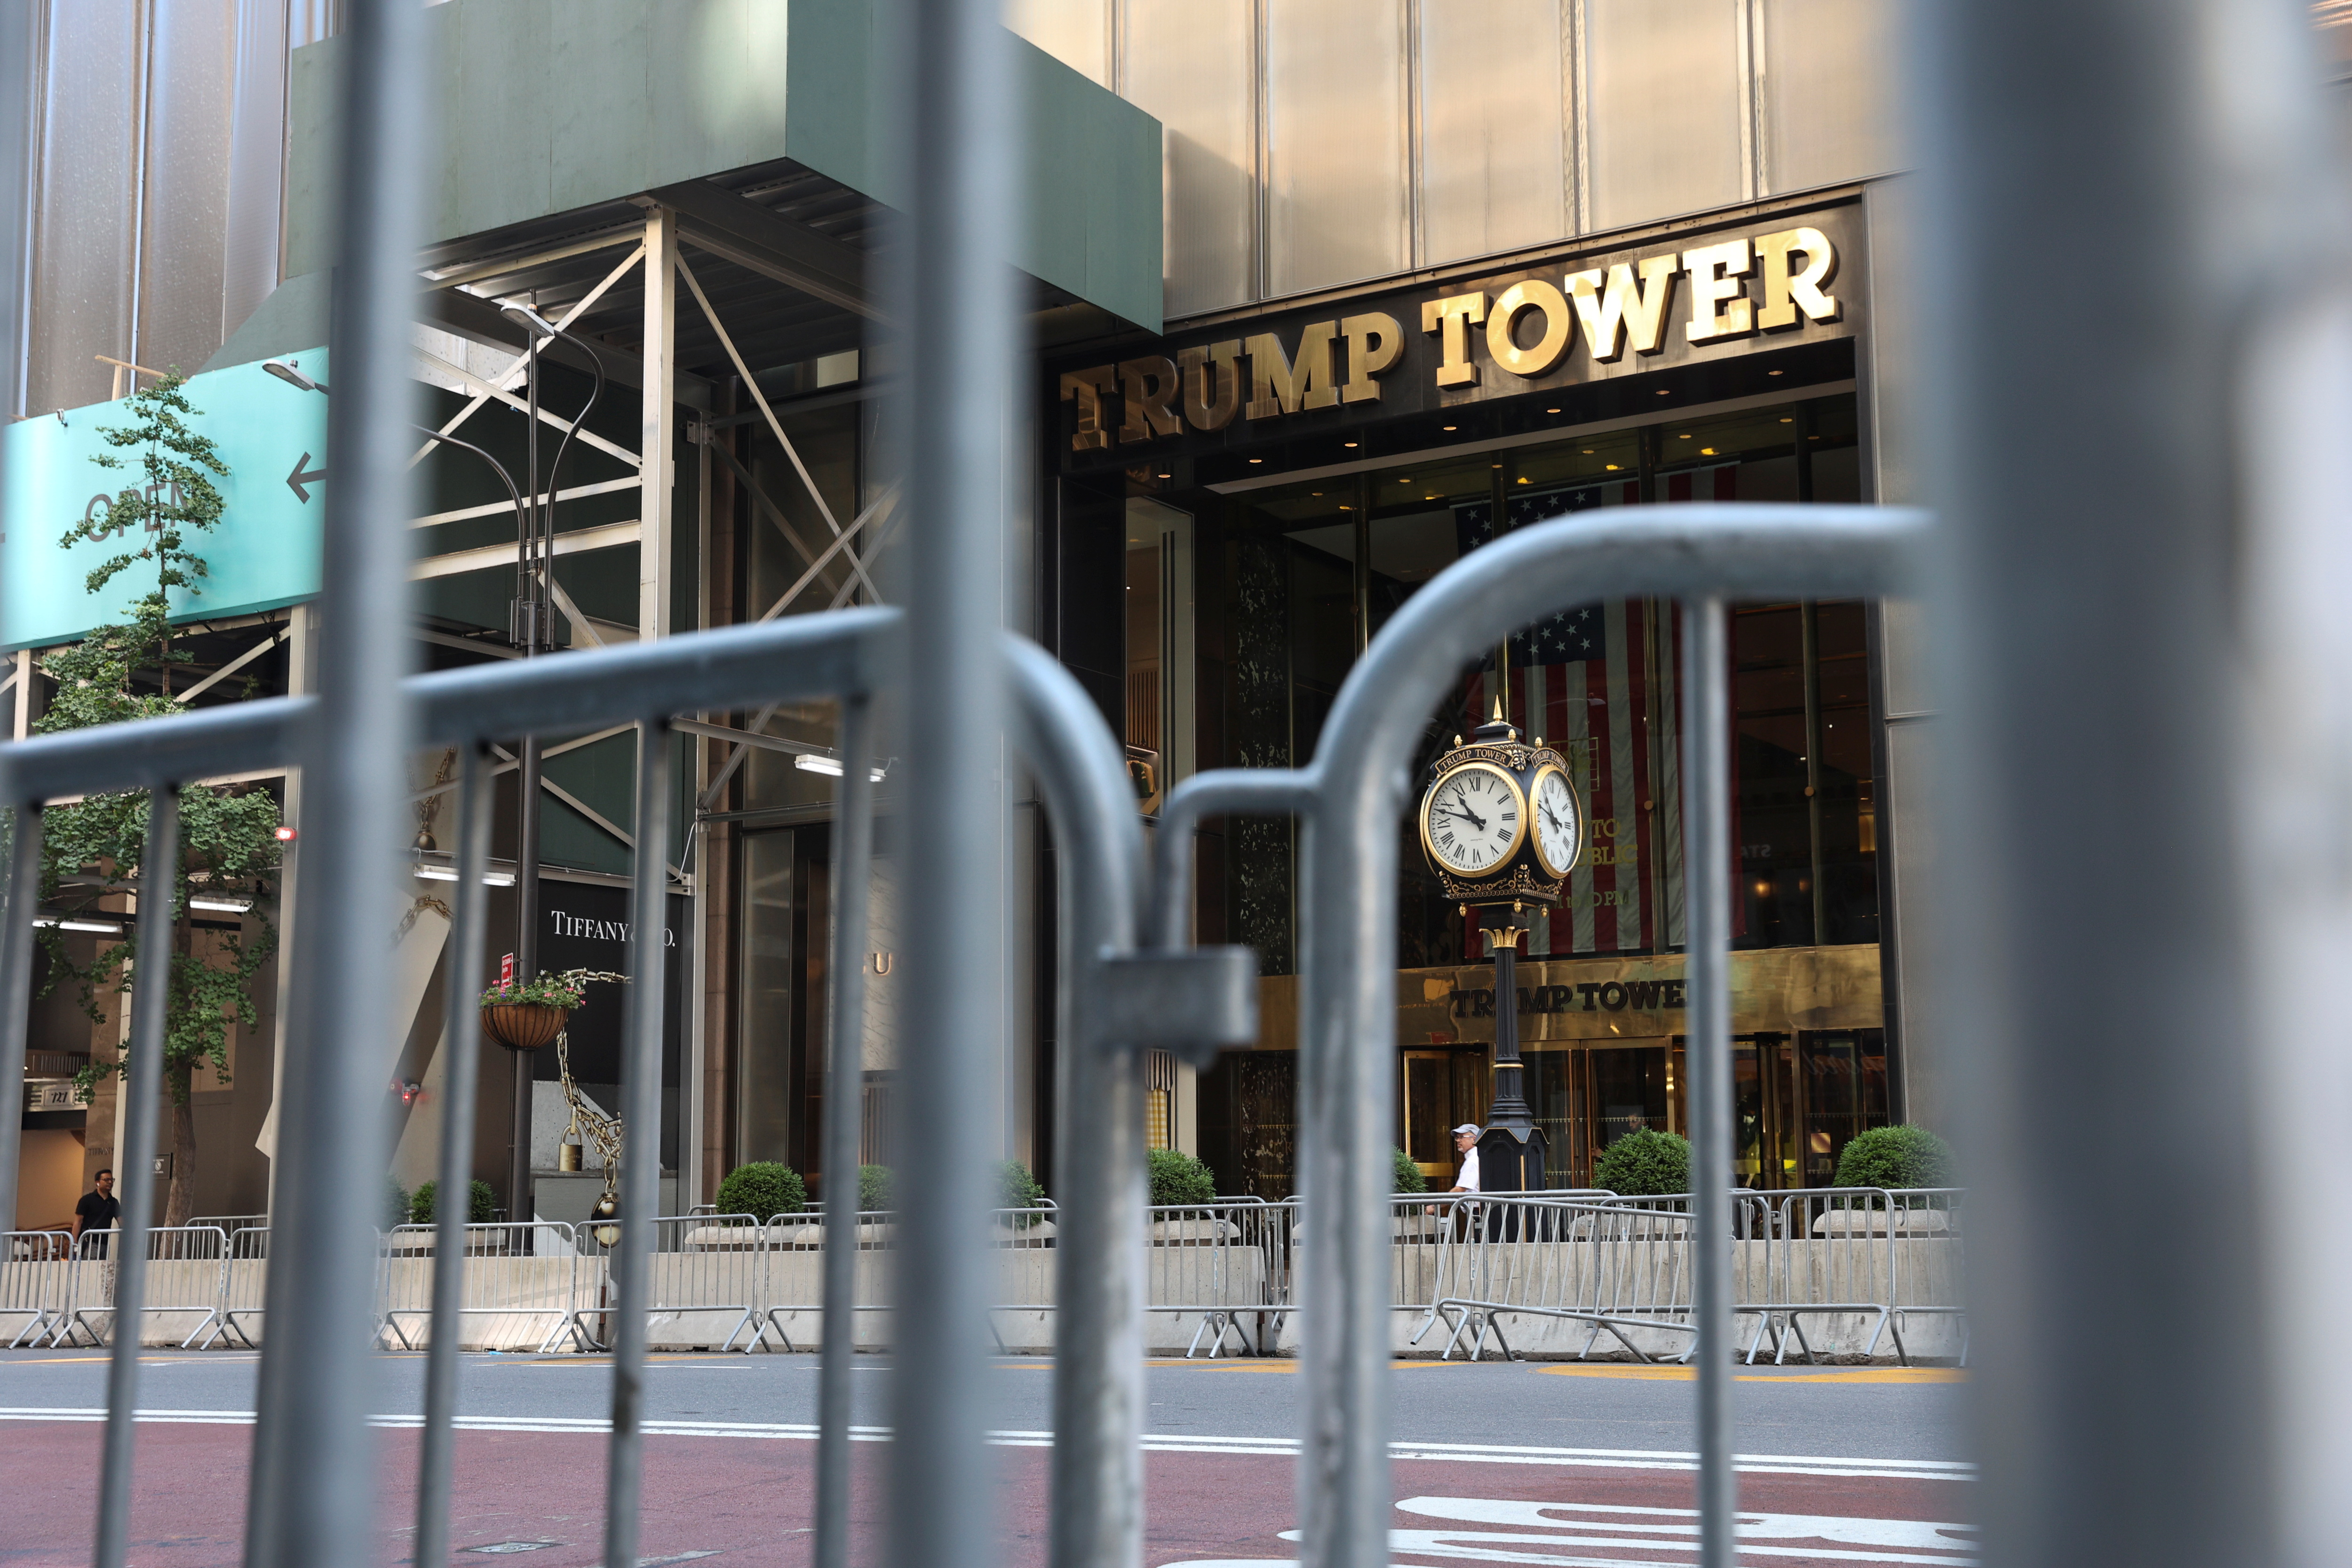 The entrance to Trump Tower on 5th Avenue is pictured in the Manhattan borough of New York City, U.S., June 30, 2021. REUTERS/Angus Mordant